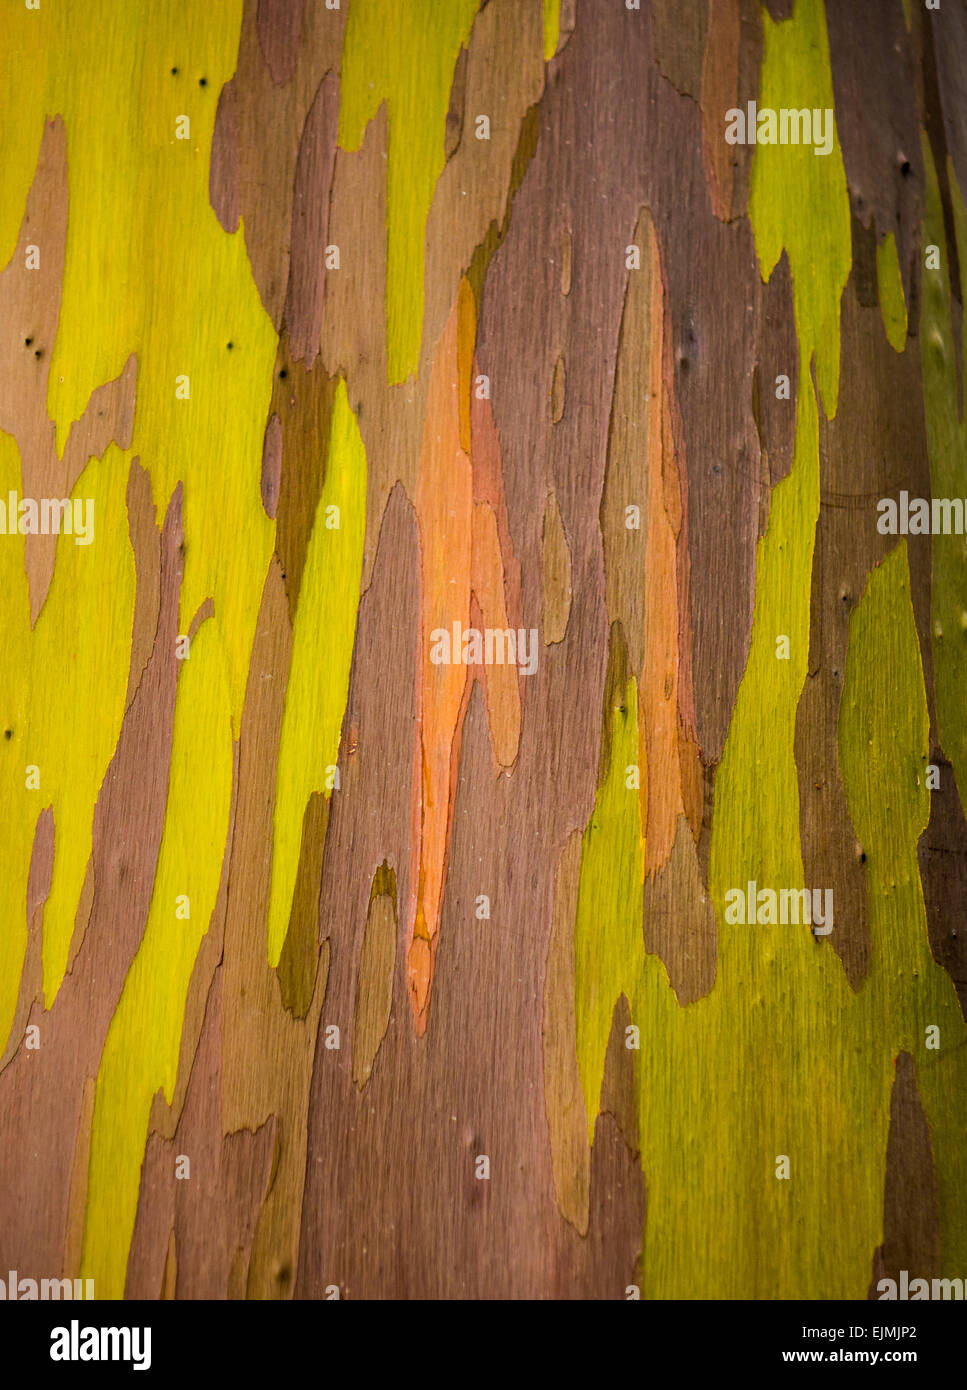 Close up of the colorful bark and tree trunk of the Rainbow Eucalyptus tree at Keahua Arboretum in Kauai, Hawaii, - Stock Image